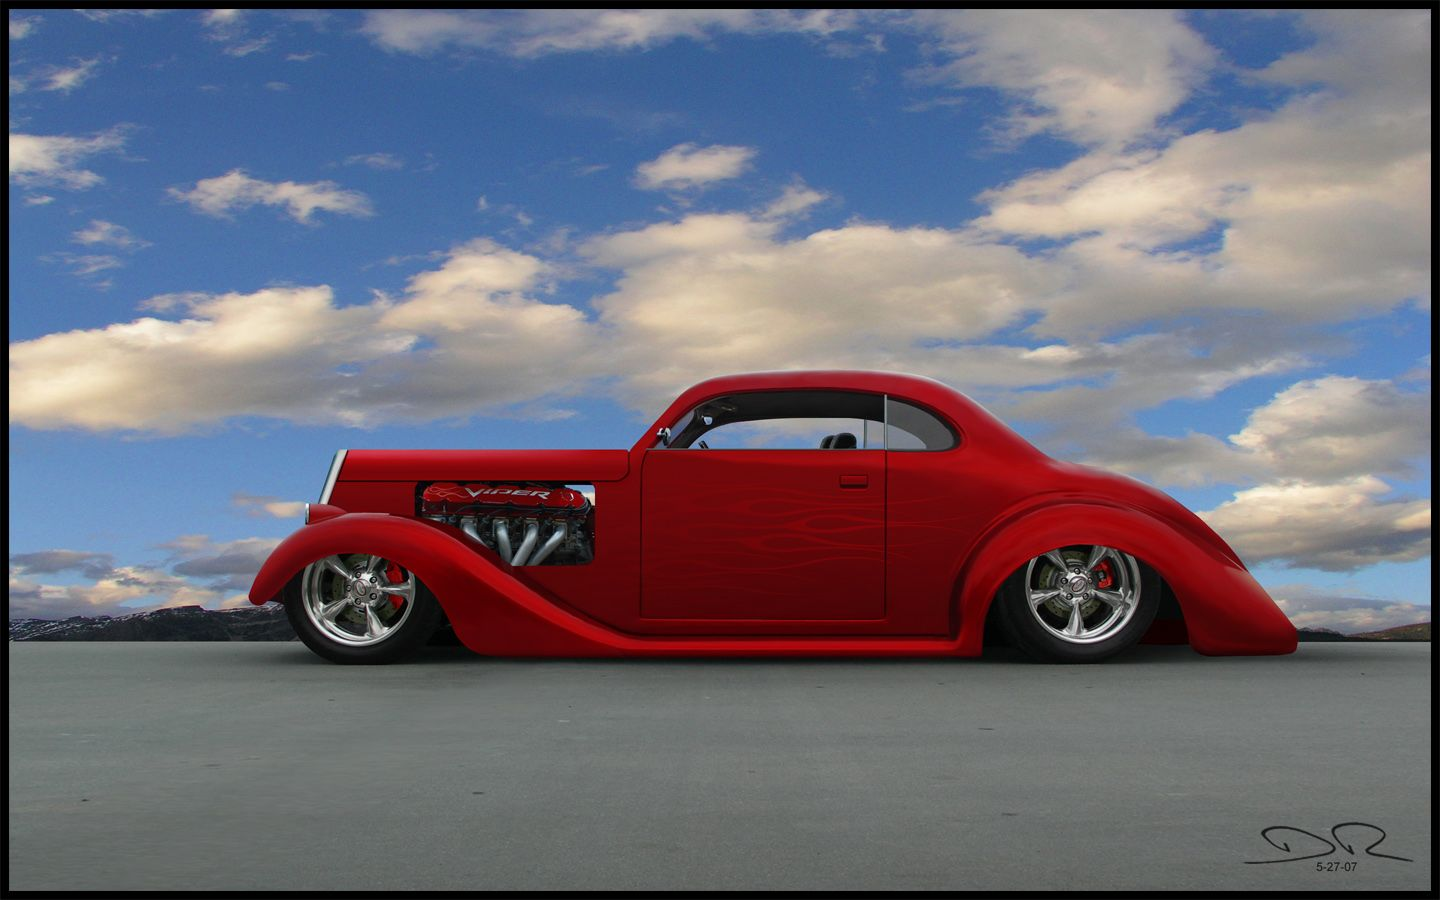 36 Dodge ,powered by a Viper V10 | Nice Rides | Pinterest | Viper ...